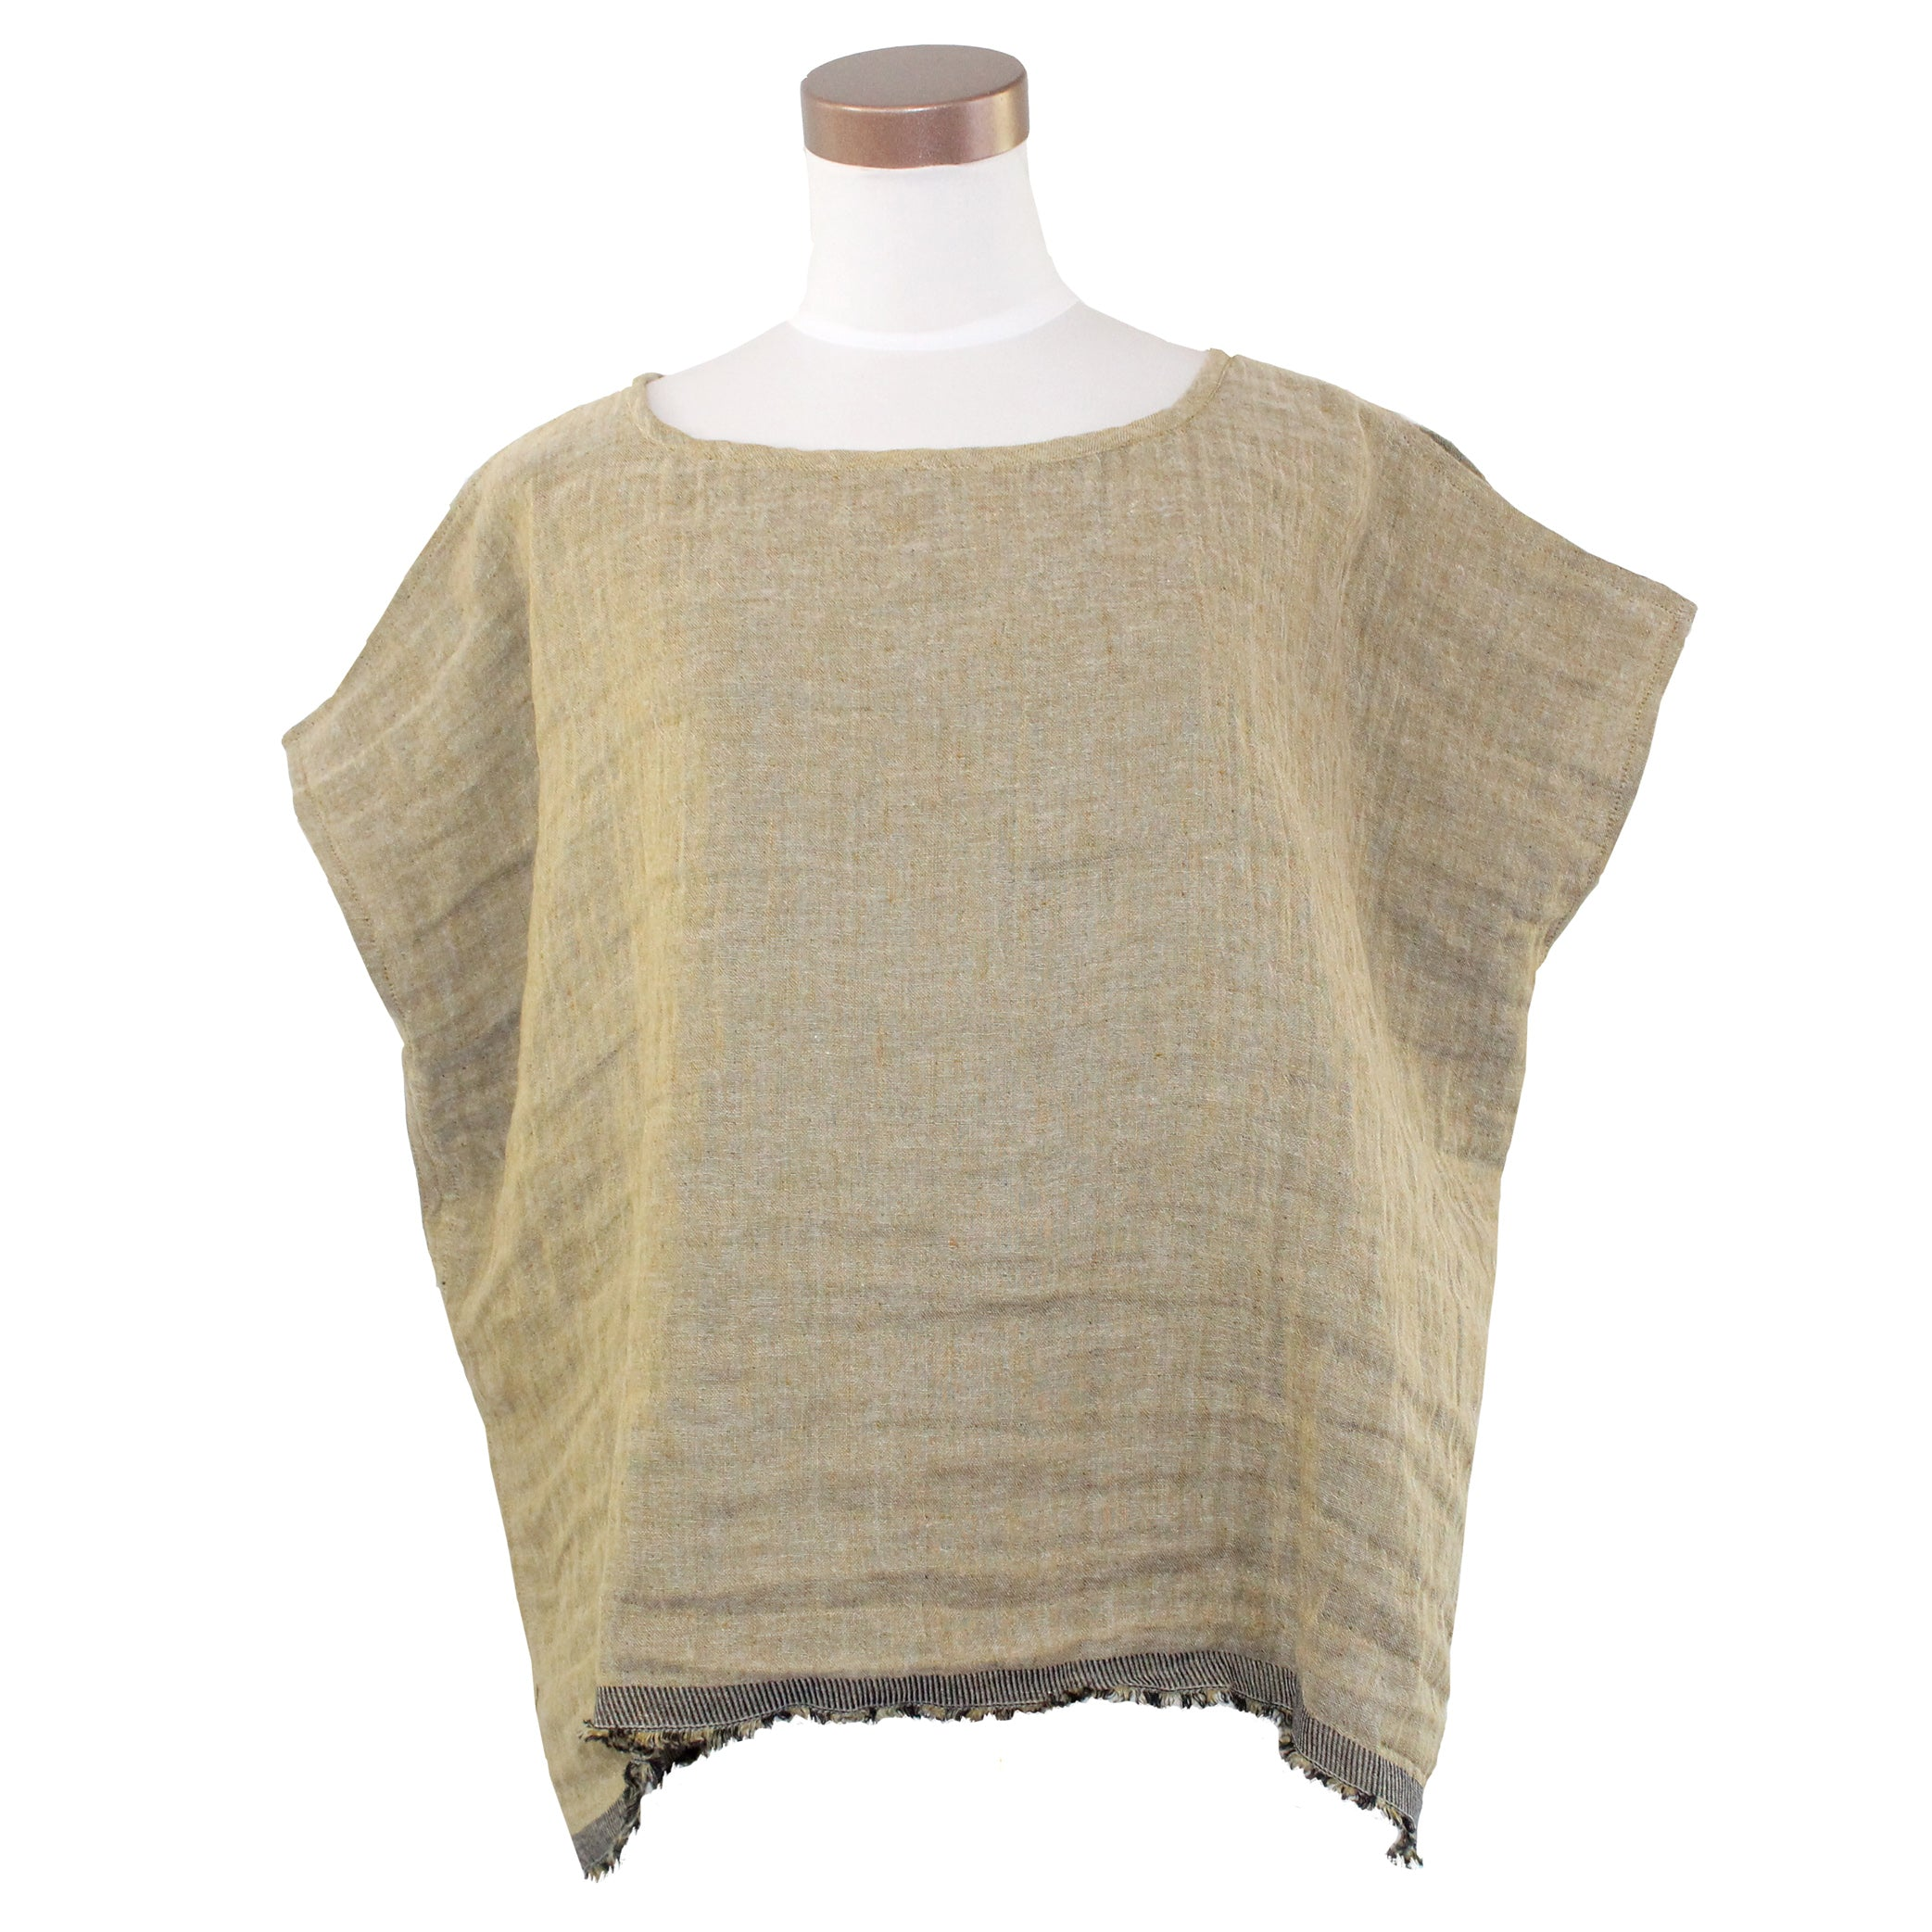 Kim Bernardin Top, Gold, OS